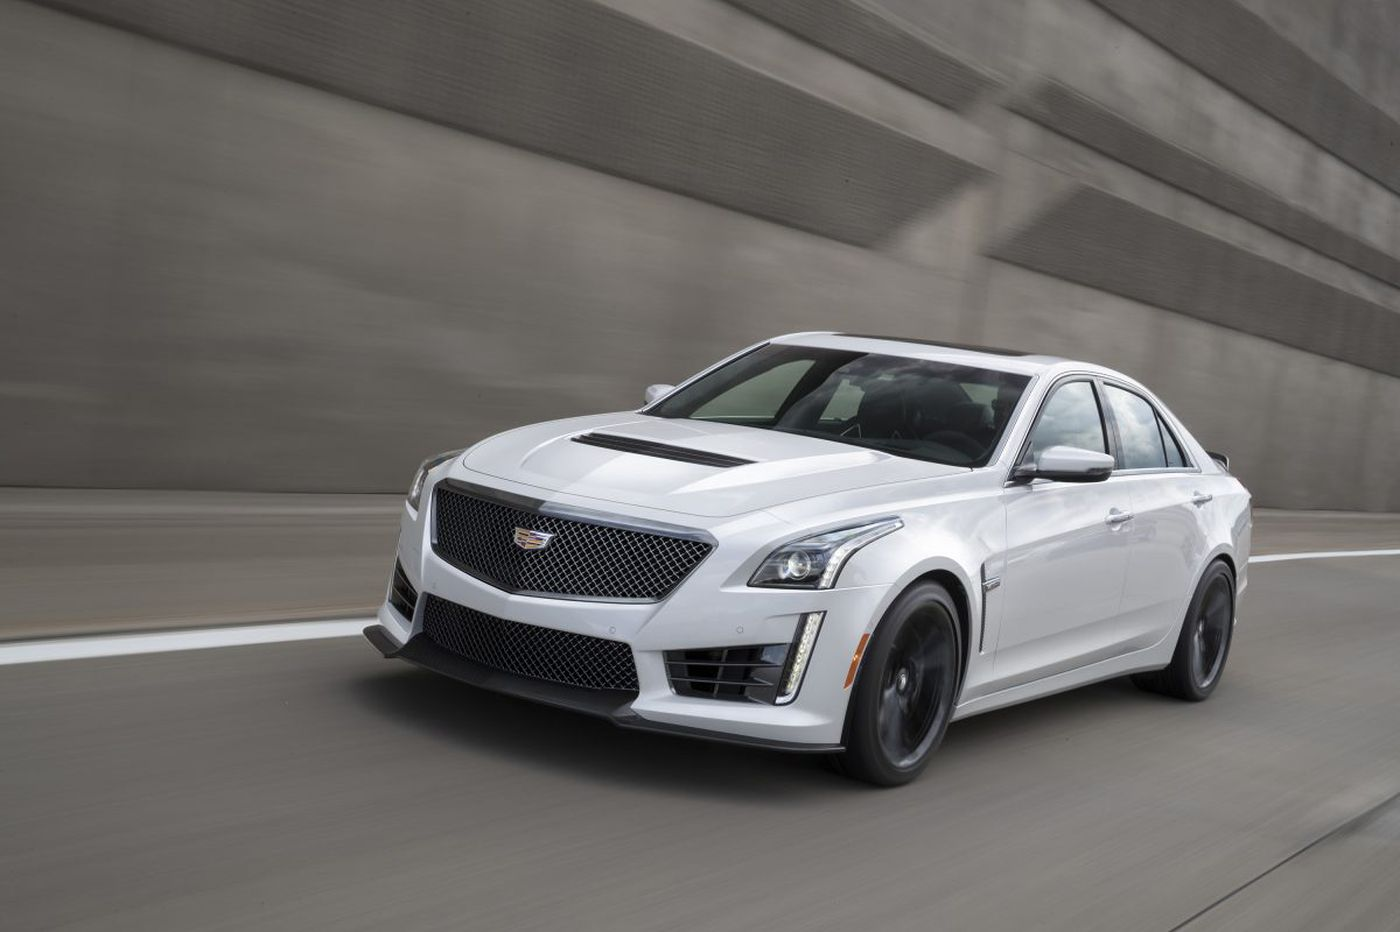 The CTS-V is the most exciting Cadillac ever built